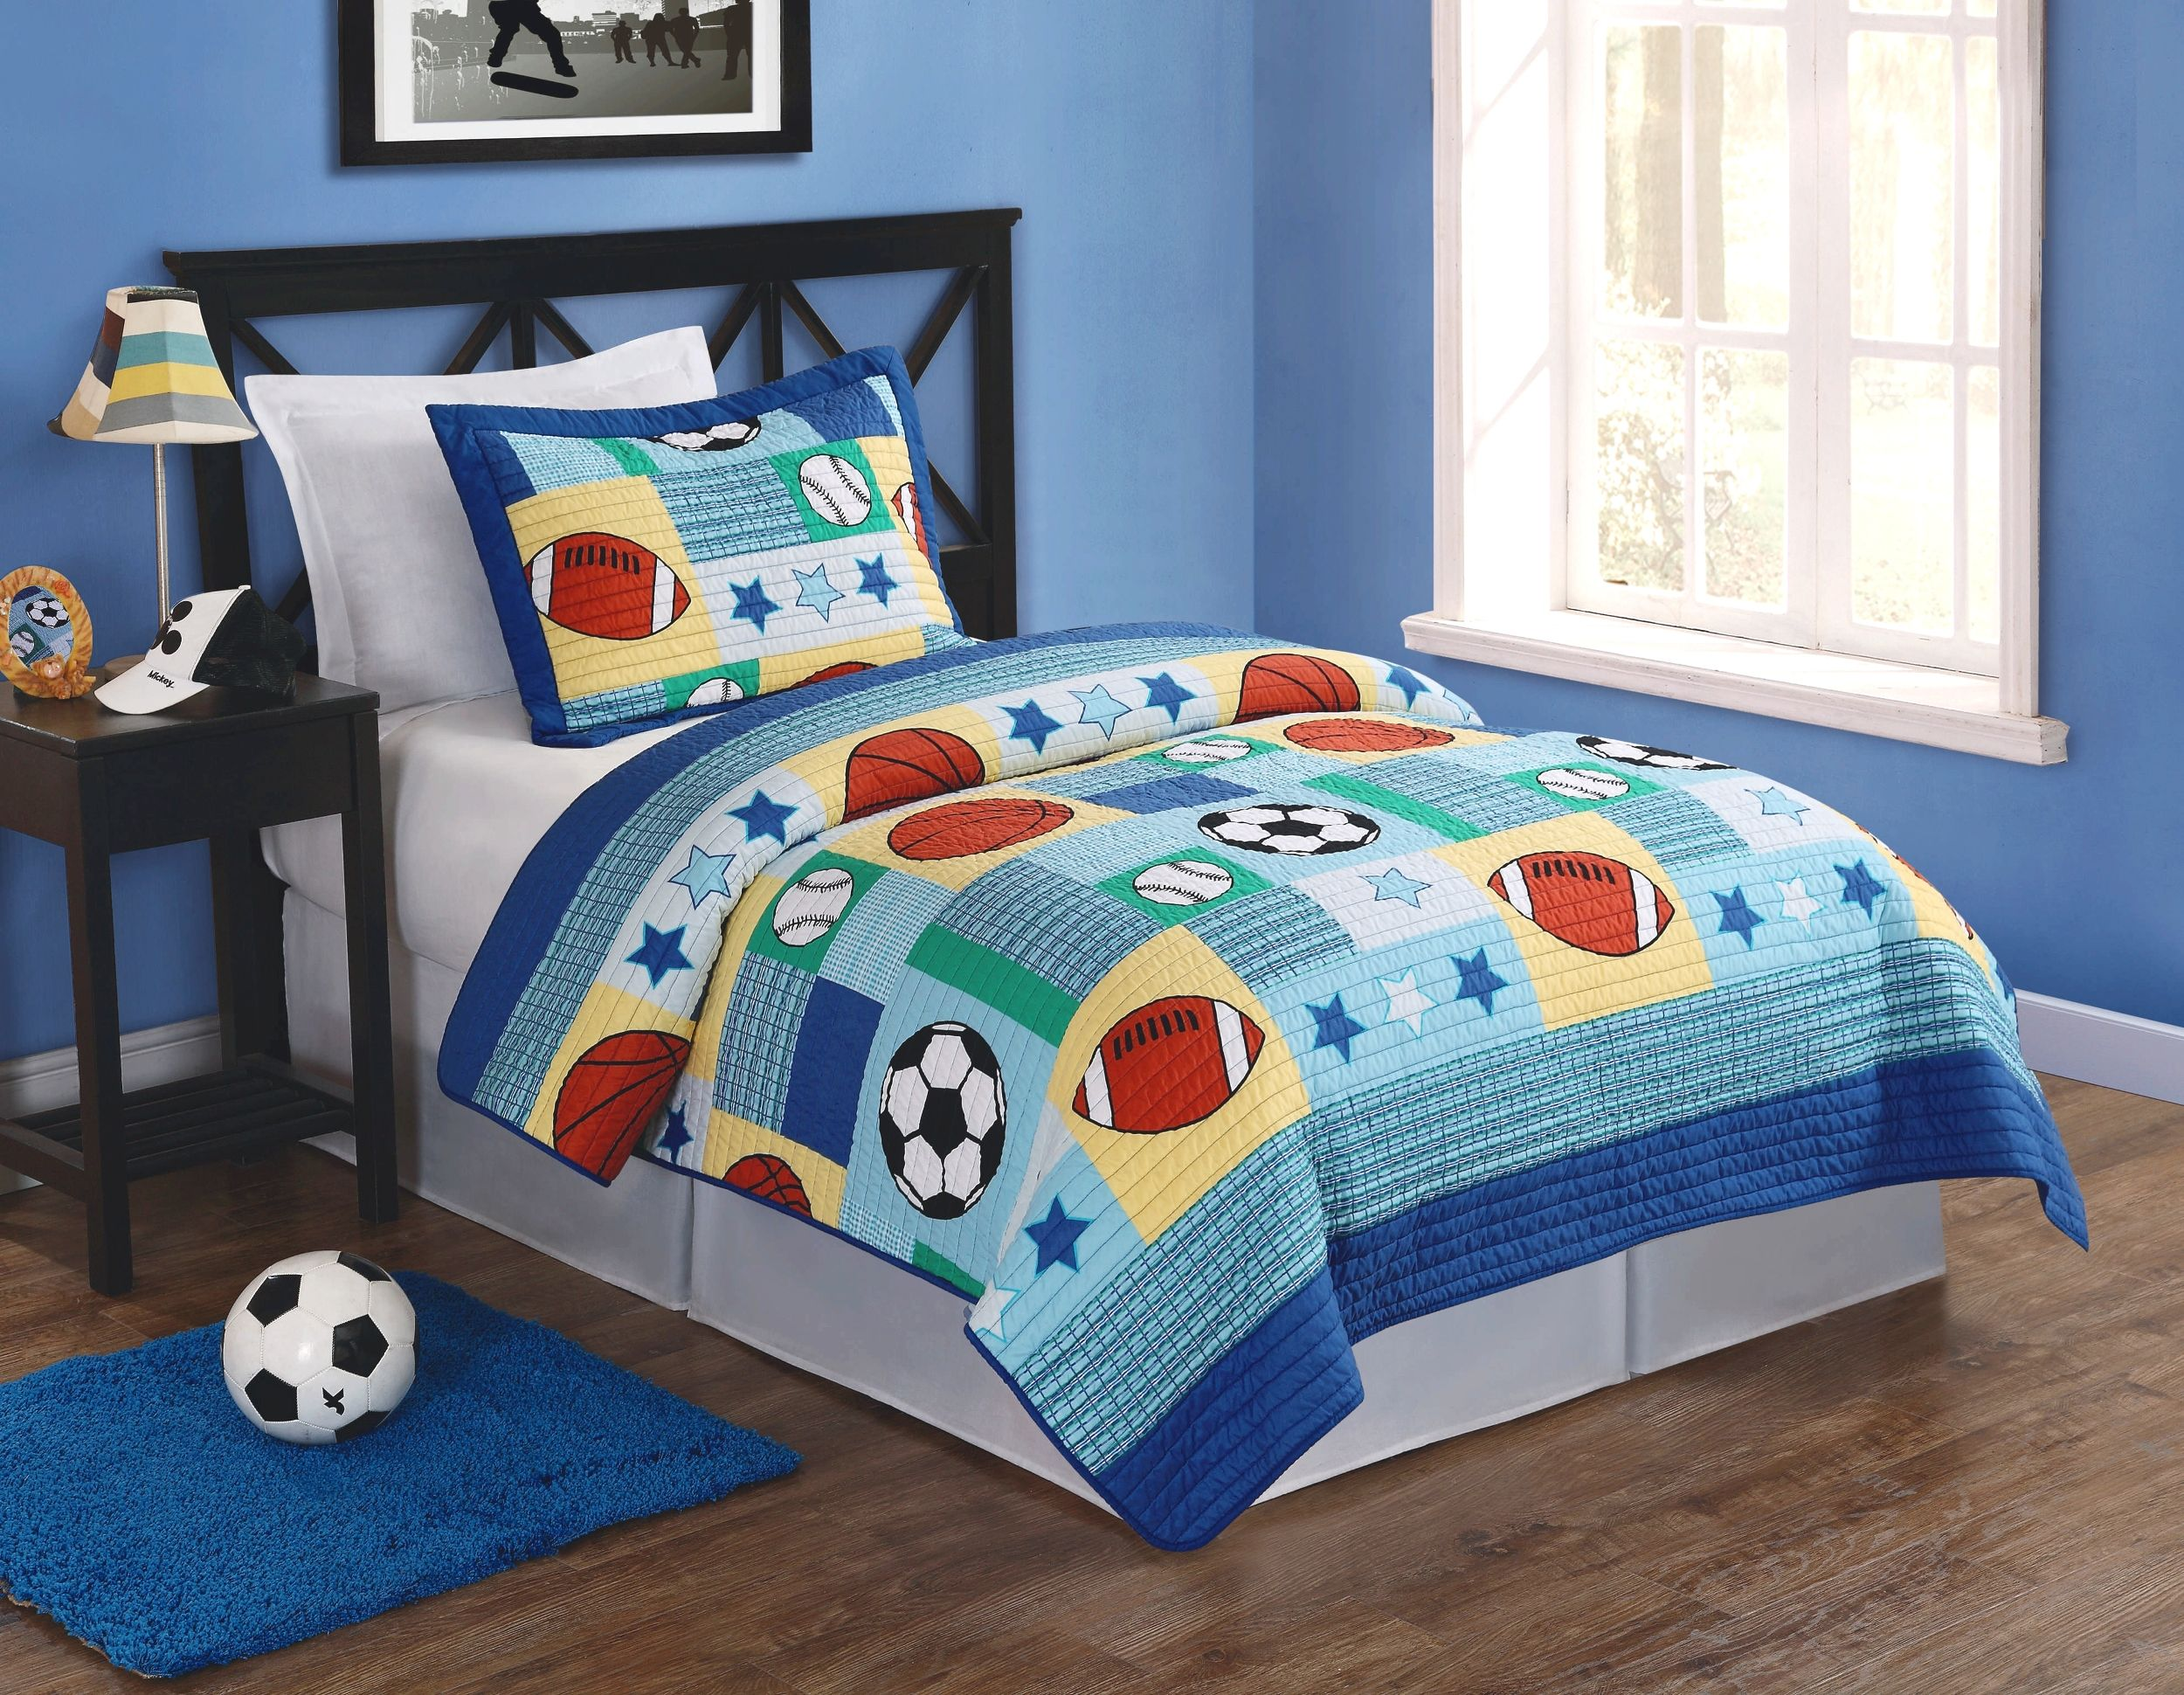 Cute Sports themed quilt for a young lad - My World Sports Multi ... : sports themed quilts - Adamdwight.com